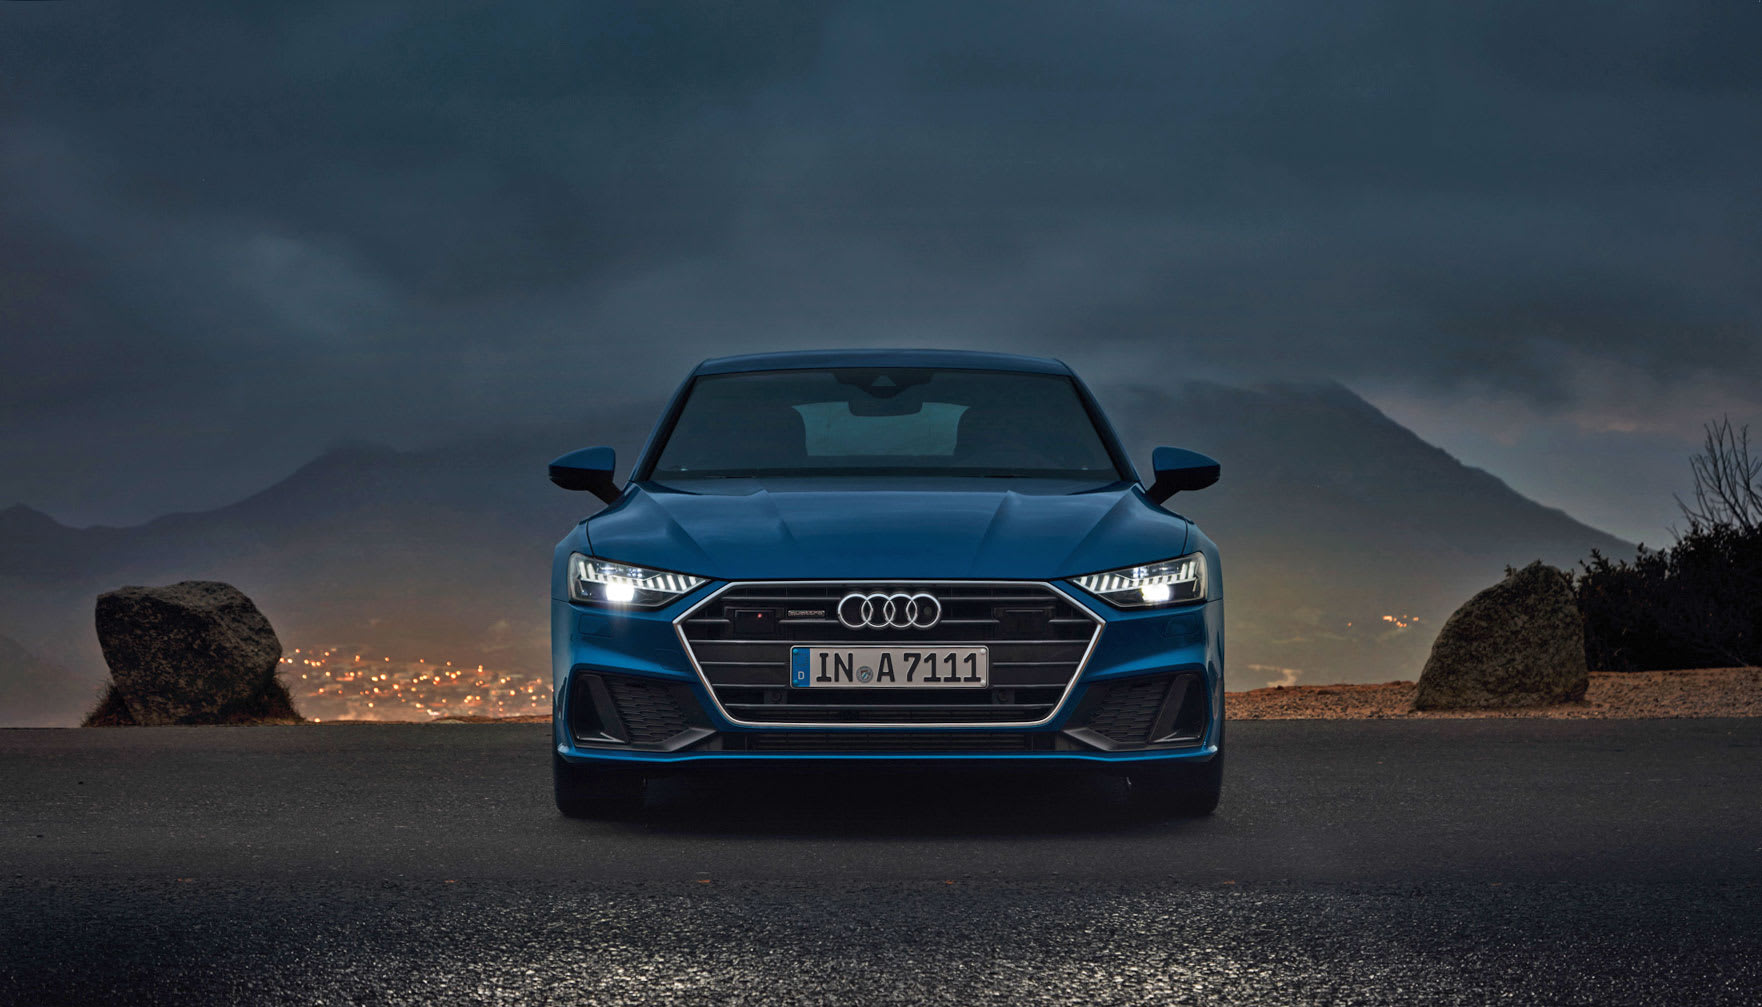 Audi's HD Matrix LED lights may soon be allowed on US roads